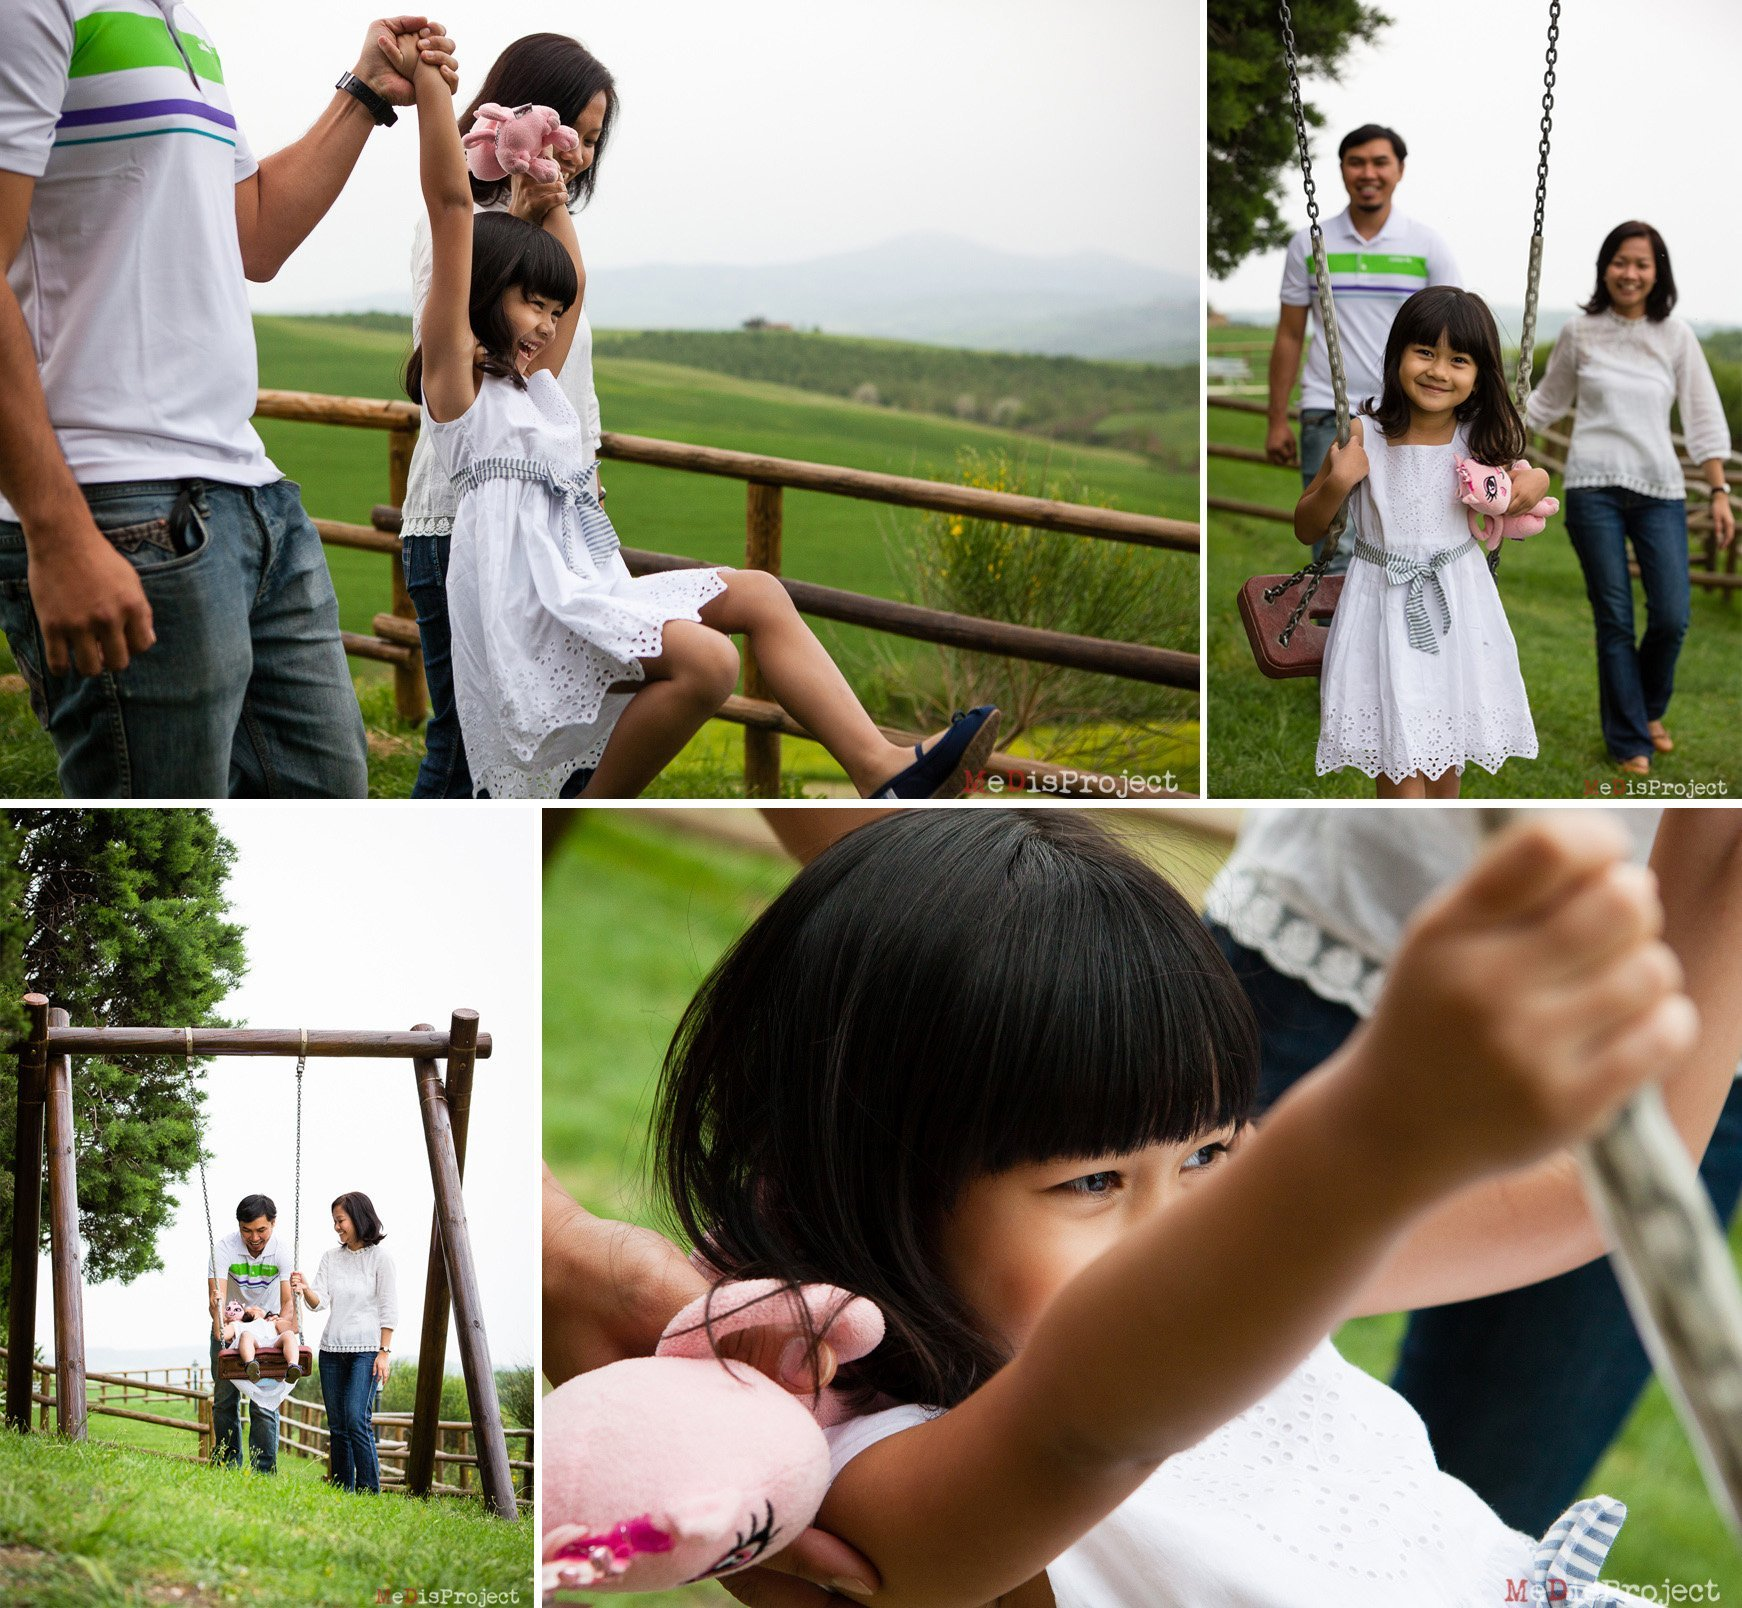 asian family portrait on a wooden swing